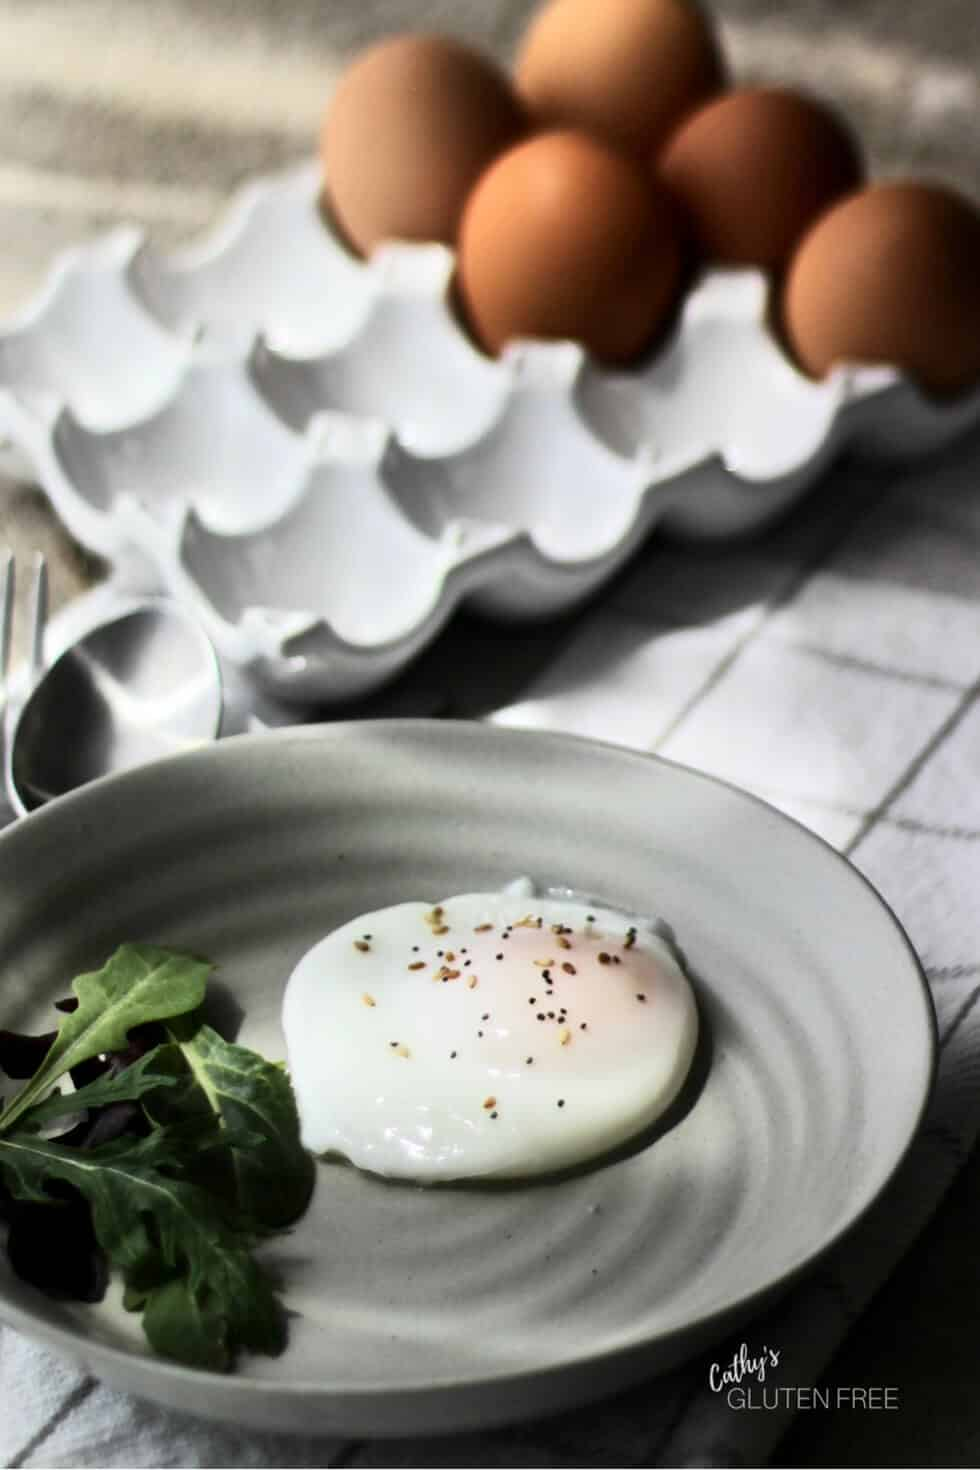 Learn this simple technique for perfectly poached eggs.